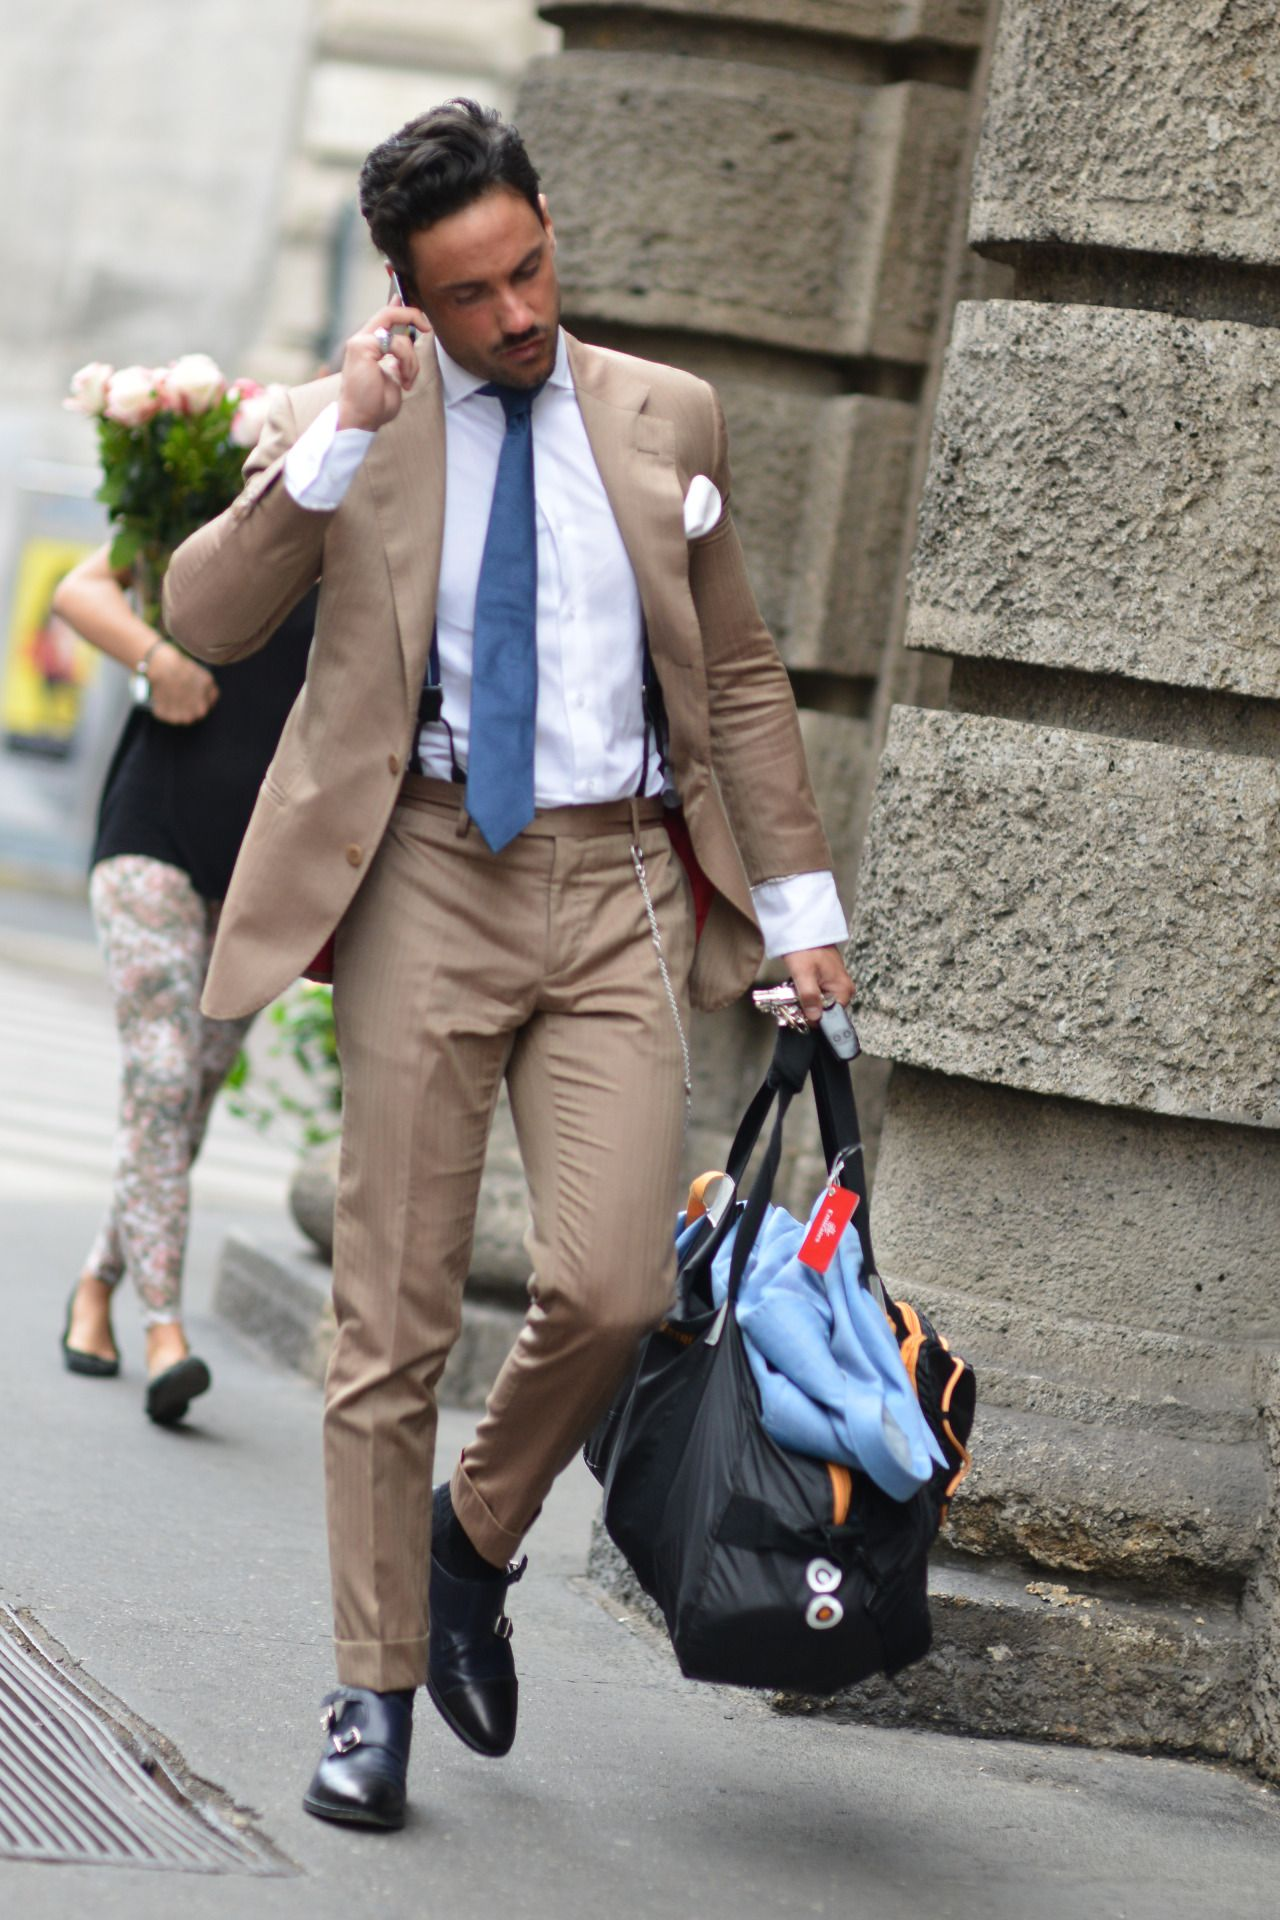 Milan streets one of my favorite shotus for british gq